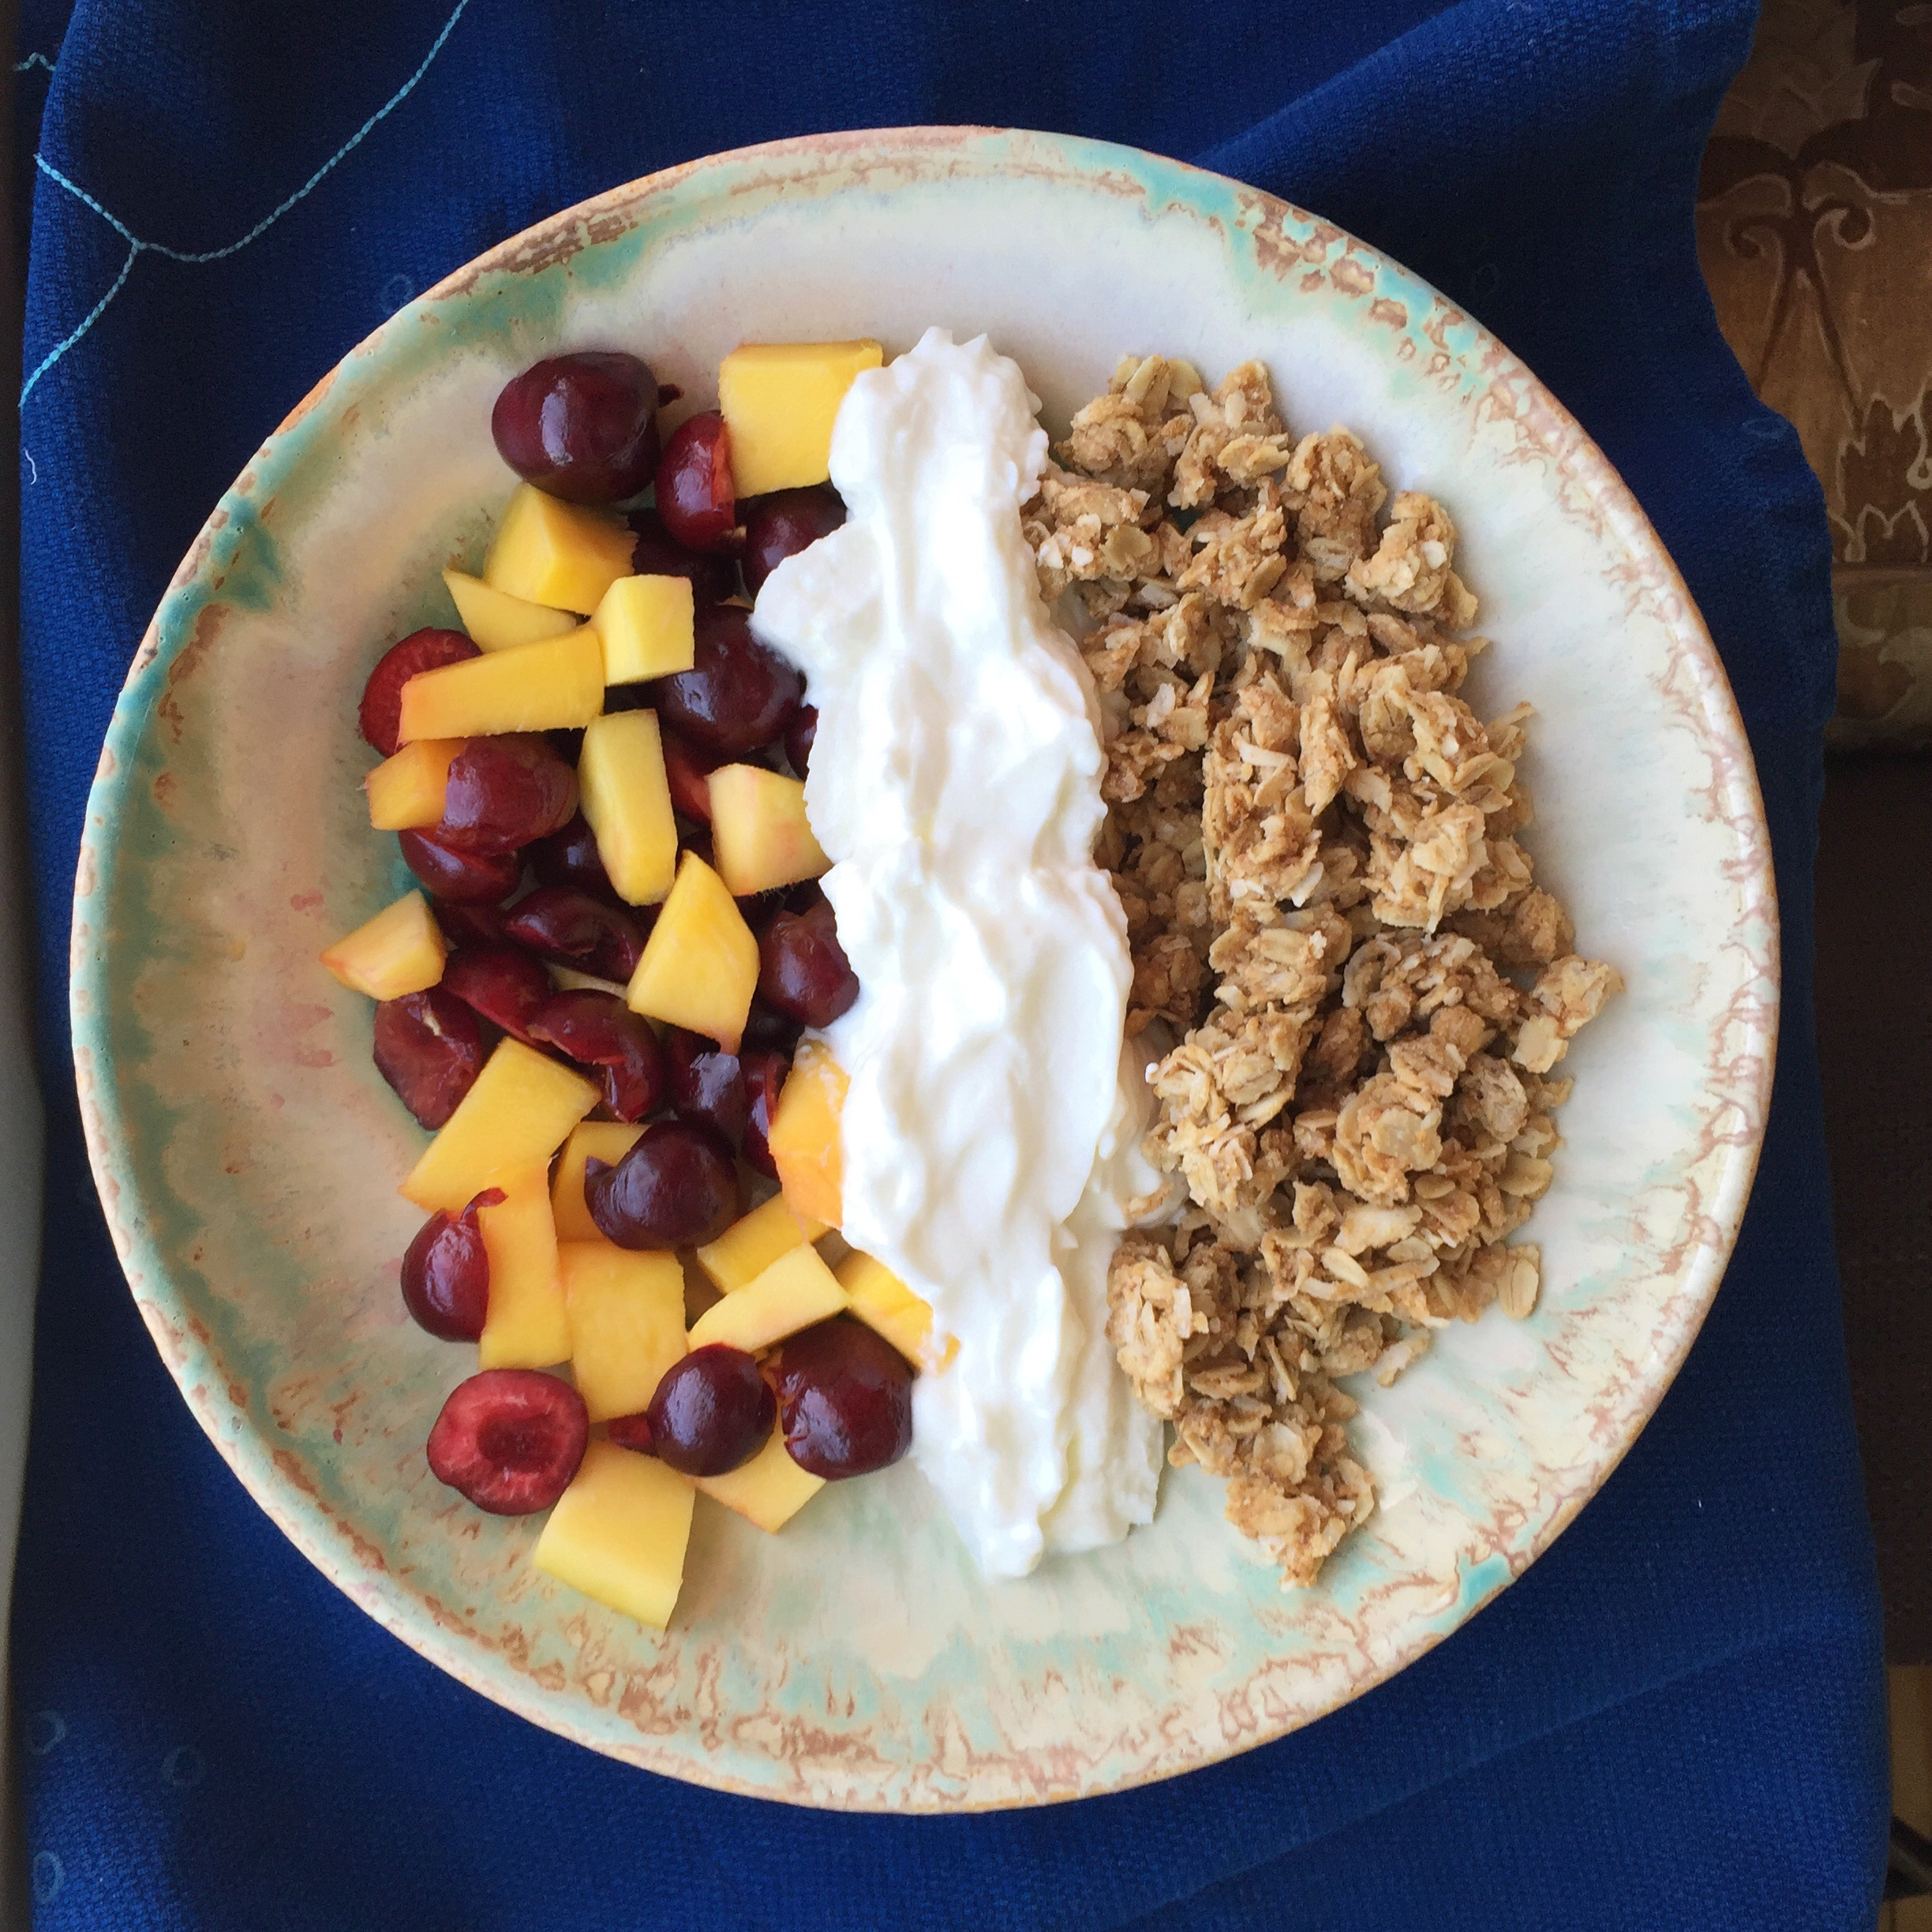 Anna's version of our family favorite granola with Greek yogurt, mango & cherries.